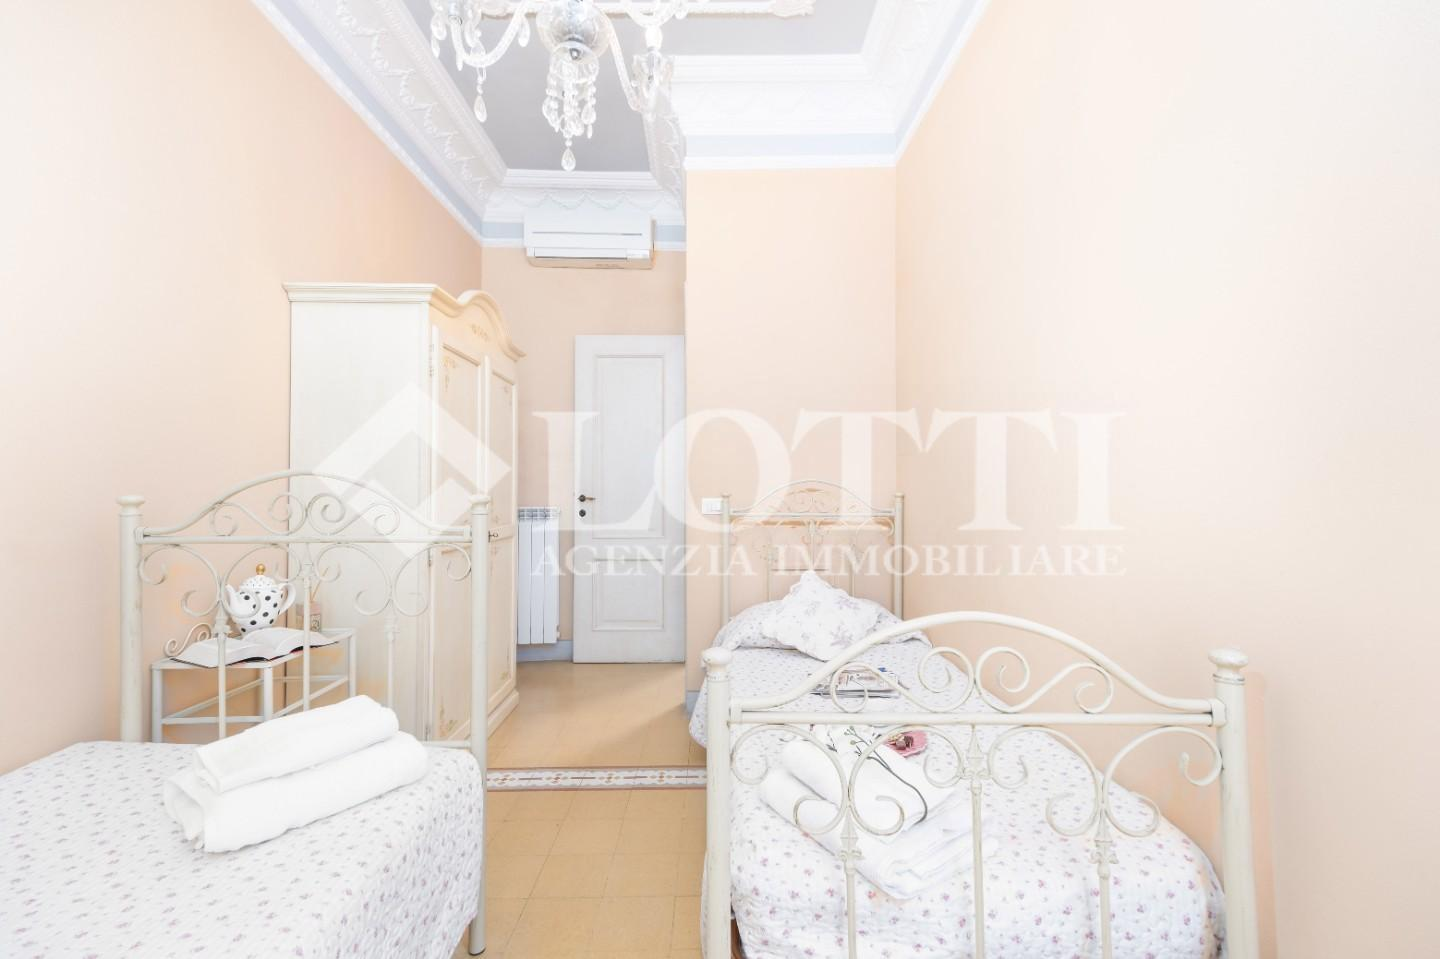 Townhouses for sale, ref. 700